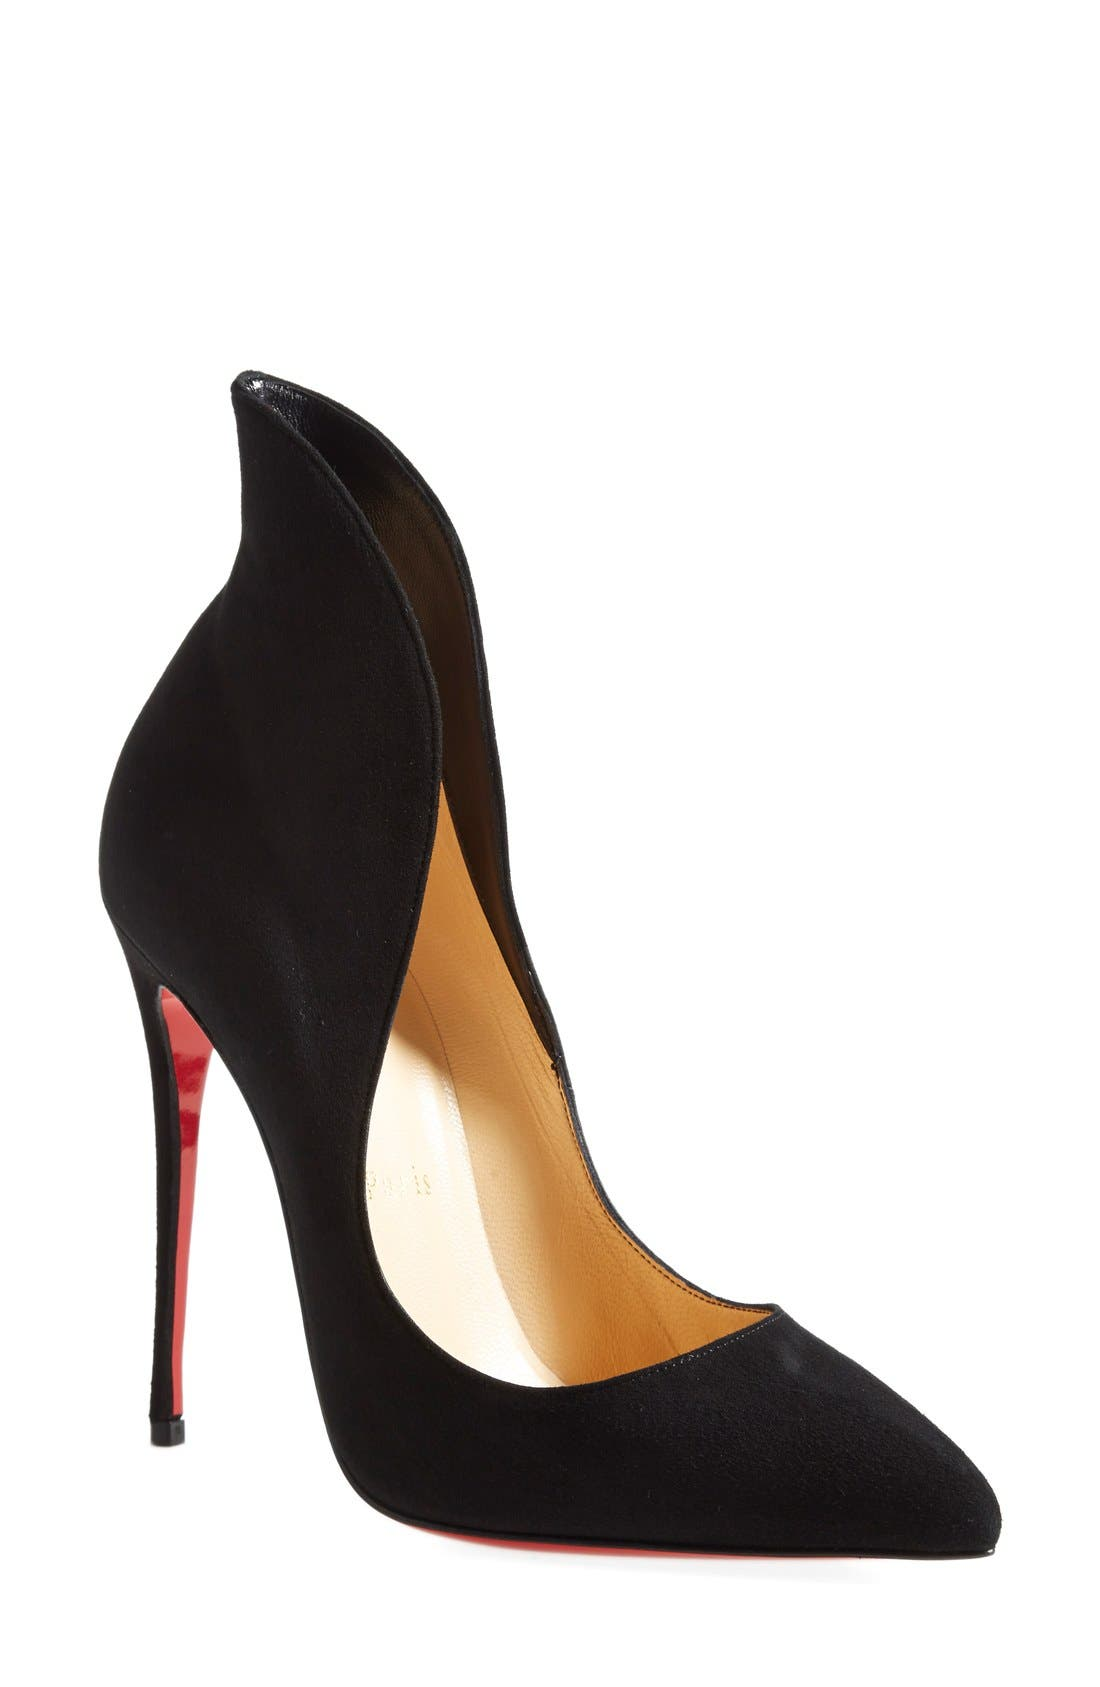 Main Image - Christian Louboutin 'Mea Culpa' Flared Pointy Toe Pump